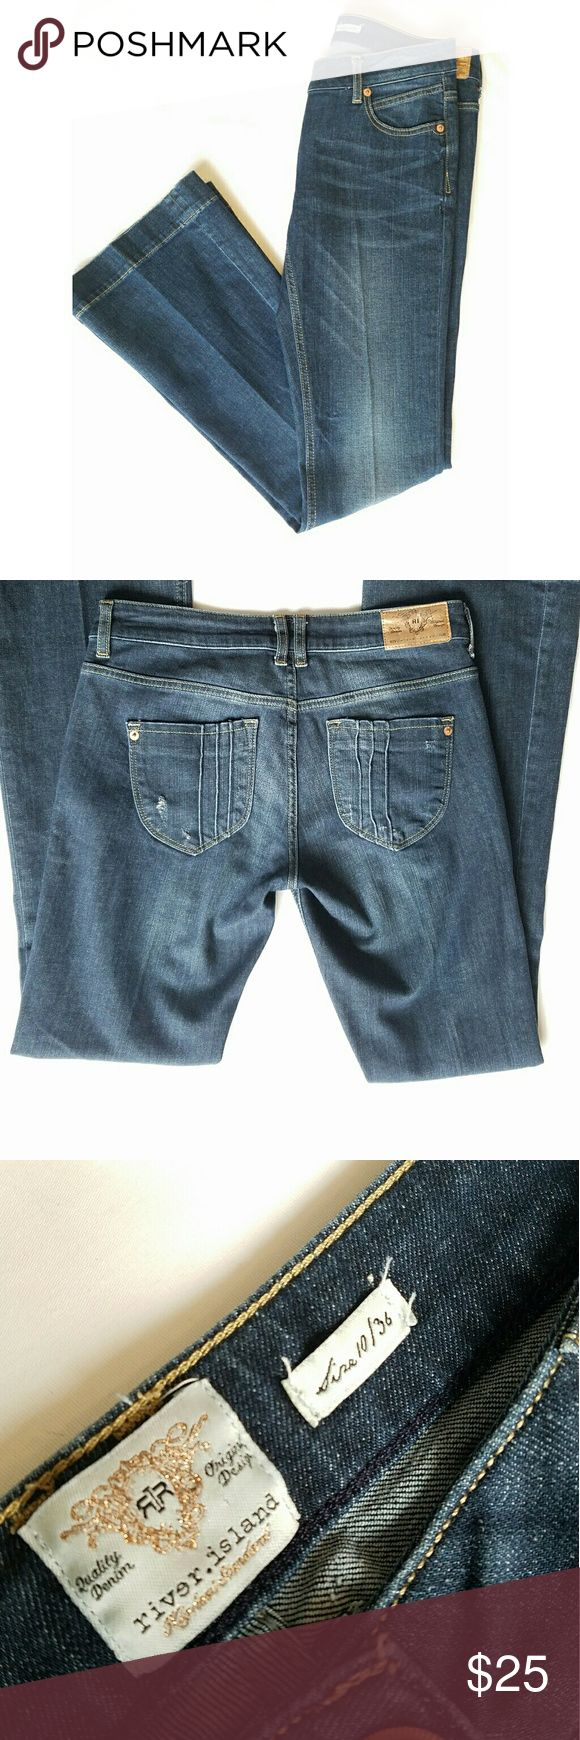 River Island jeans Great condition River Island boot cut jeans. Very comfortable! River Island Jeans Boot Cut